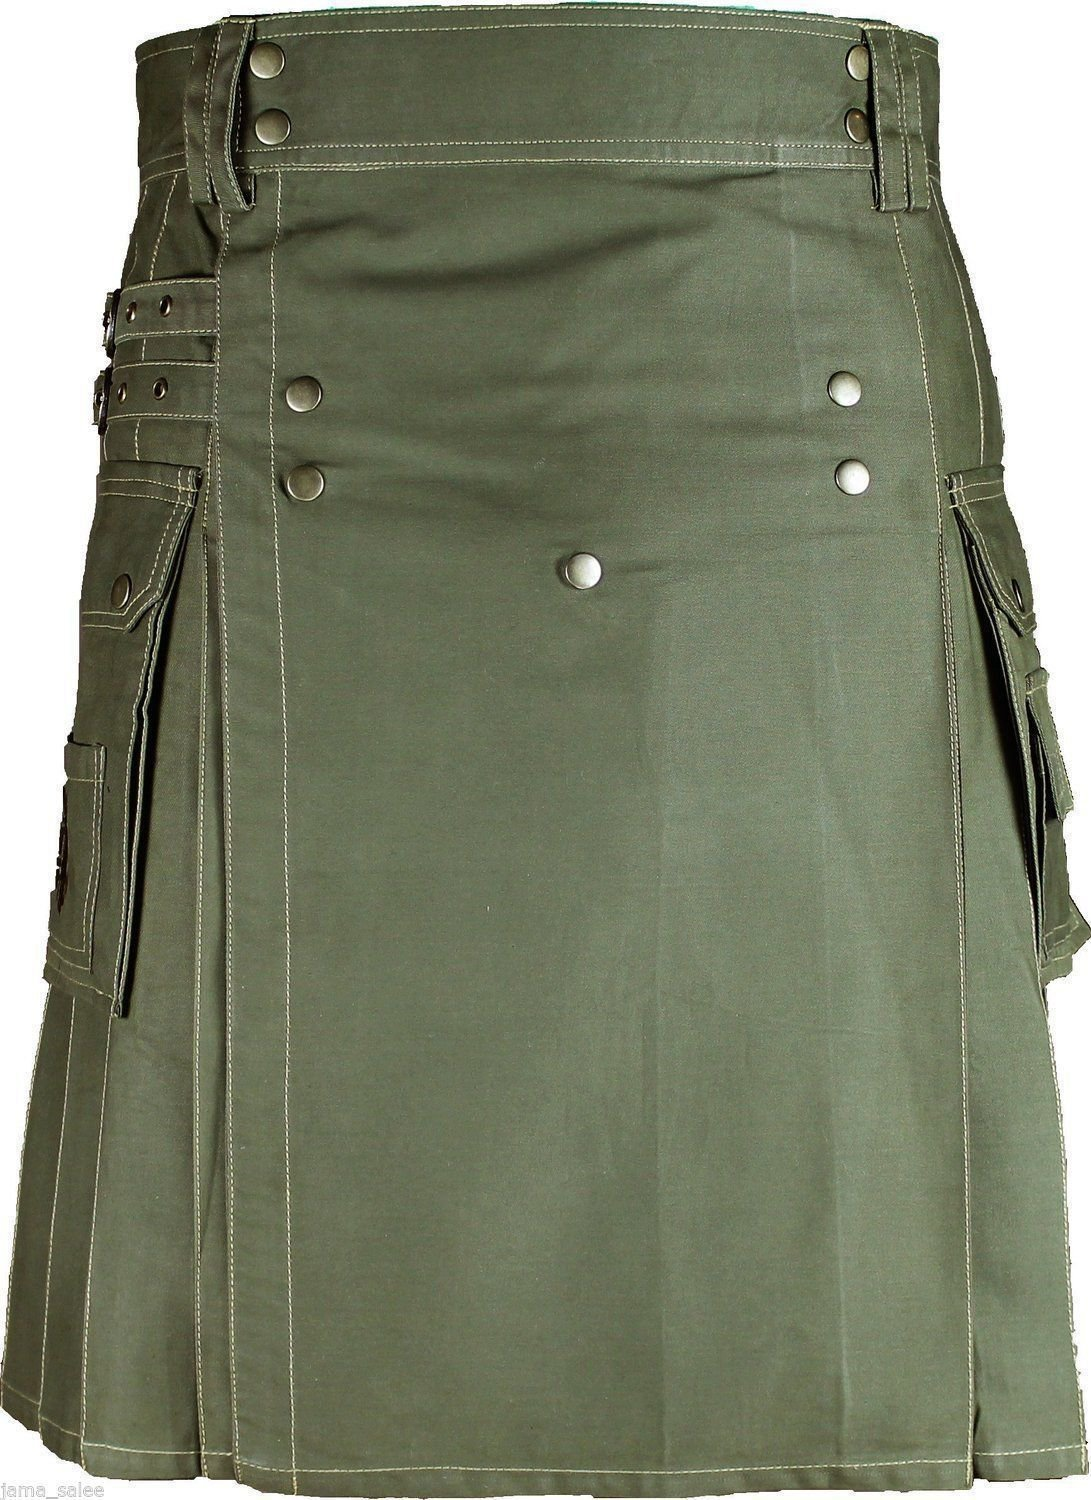 Size 32 Handmade Modern Utility Olive Green Cotton Kilt With Big Cargo Pockets Brass Materials